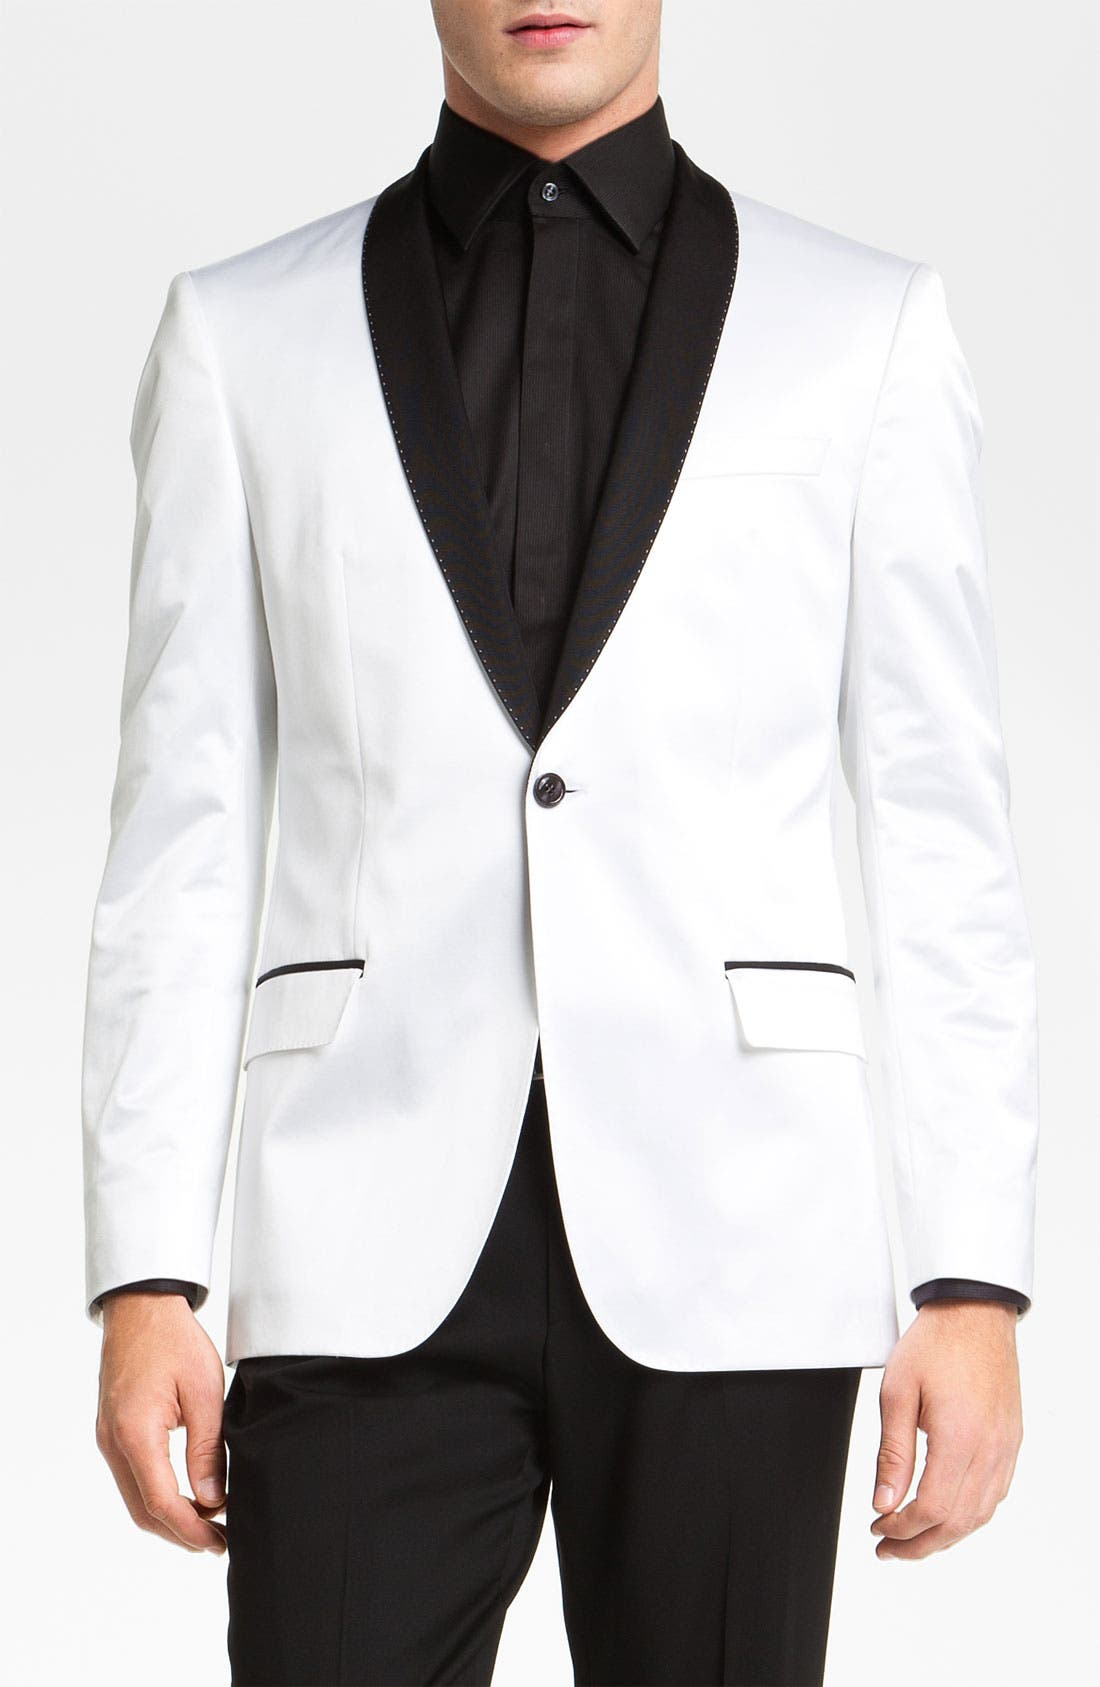 Alternate Image 1 Selected - BOSS Black 'Hyatt' Shawl Collar Dinner Jacket